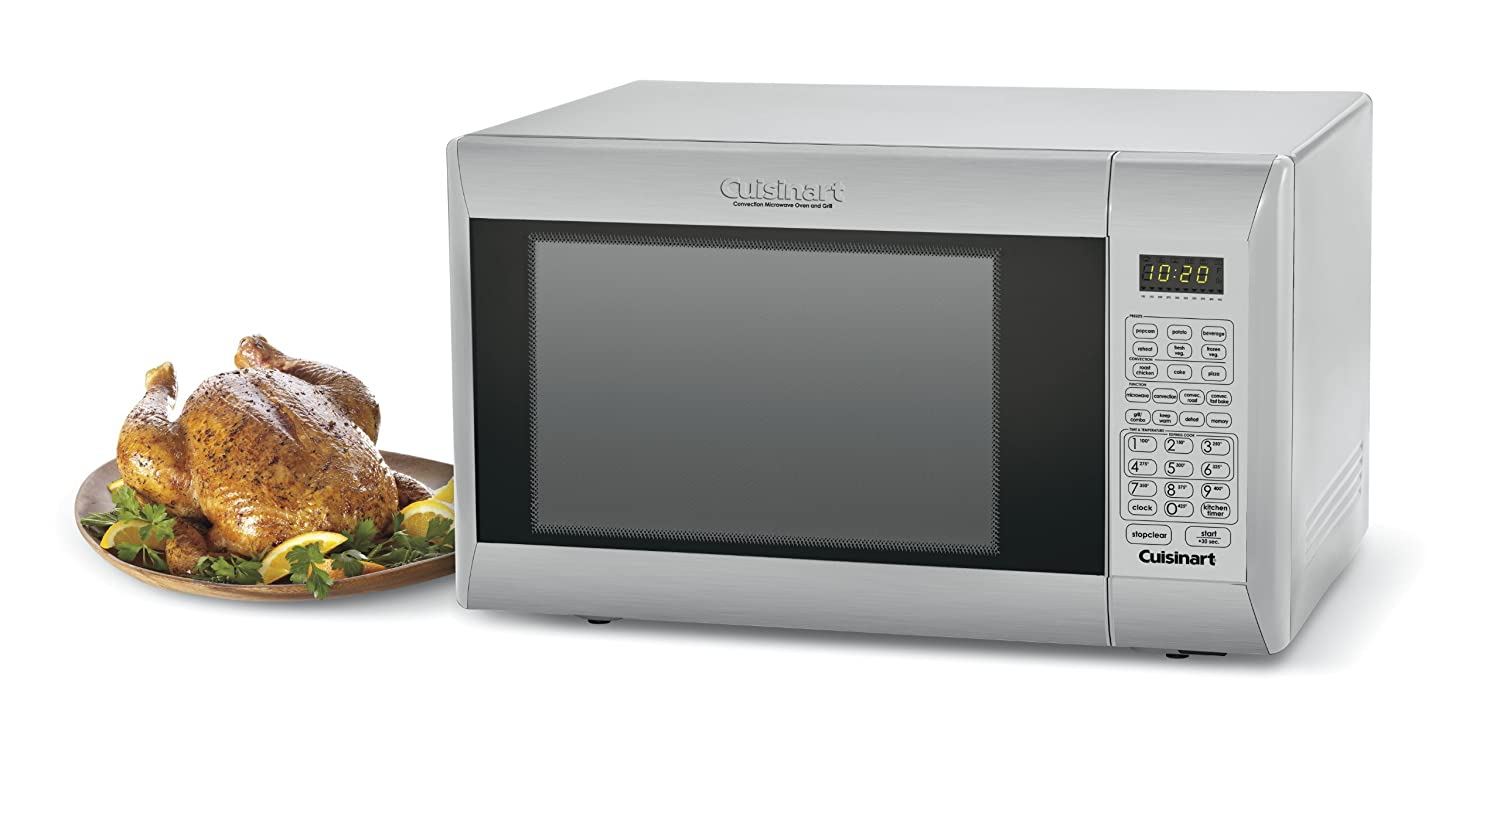 Cuisinart CMW-200 Convection Microwave Oven & Grill